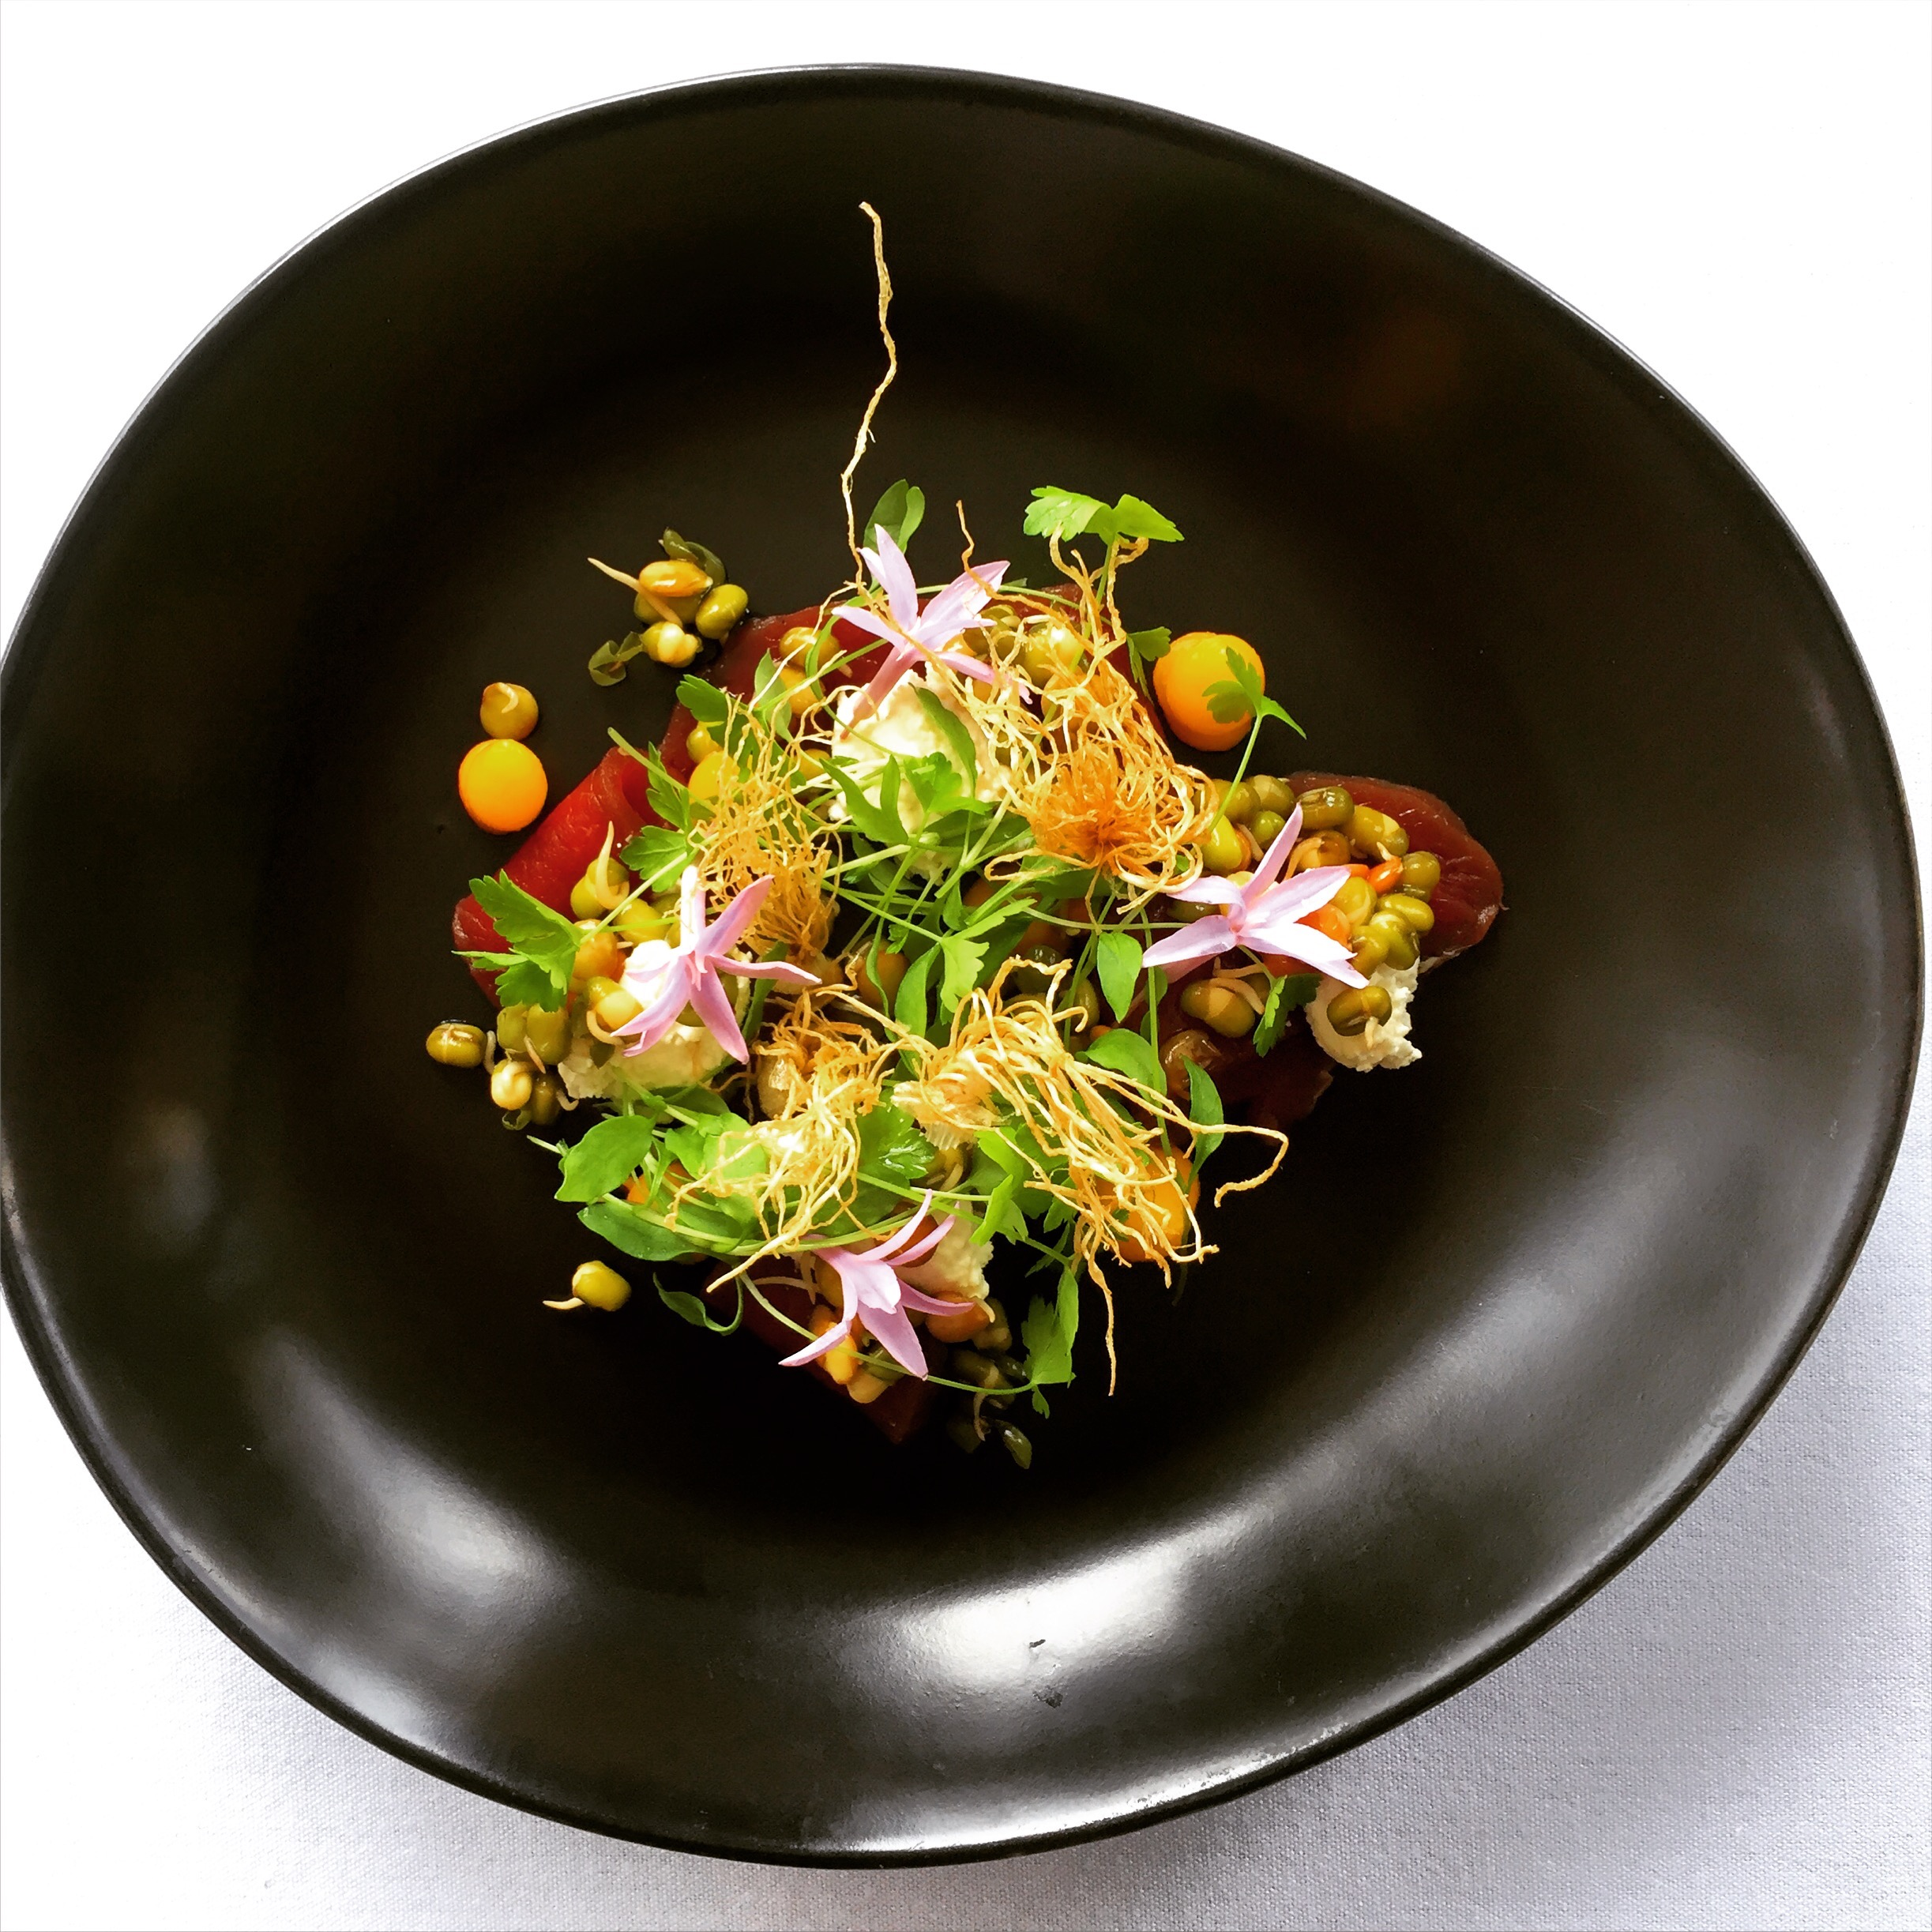 CURED VENISON LOIN, ONION TAILS, SPROUTING GRAINS, ORGANIC MILK CURD, MICRO LEAF AND GARLIC FLOWER.